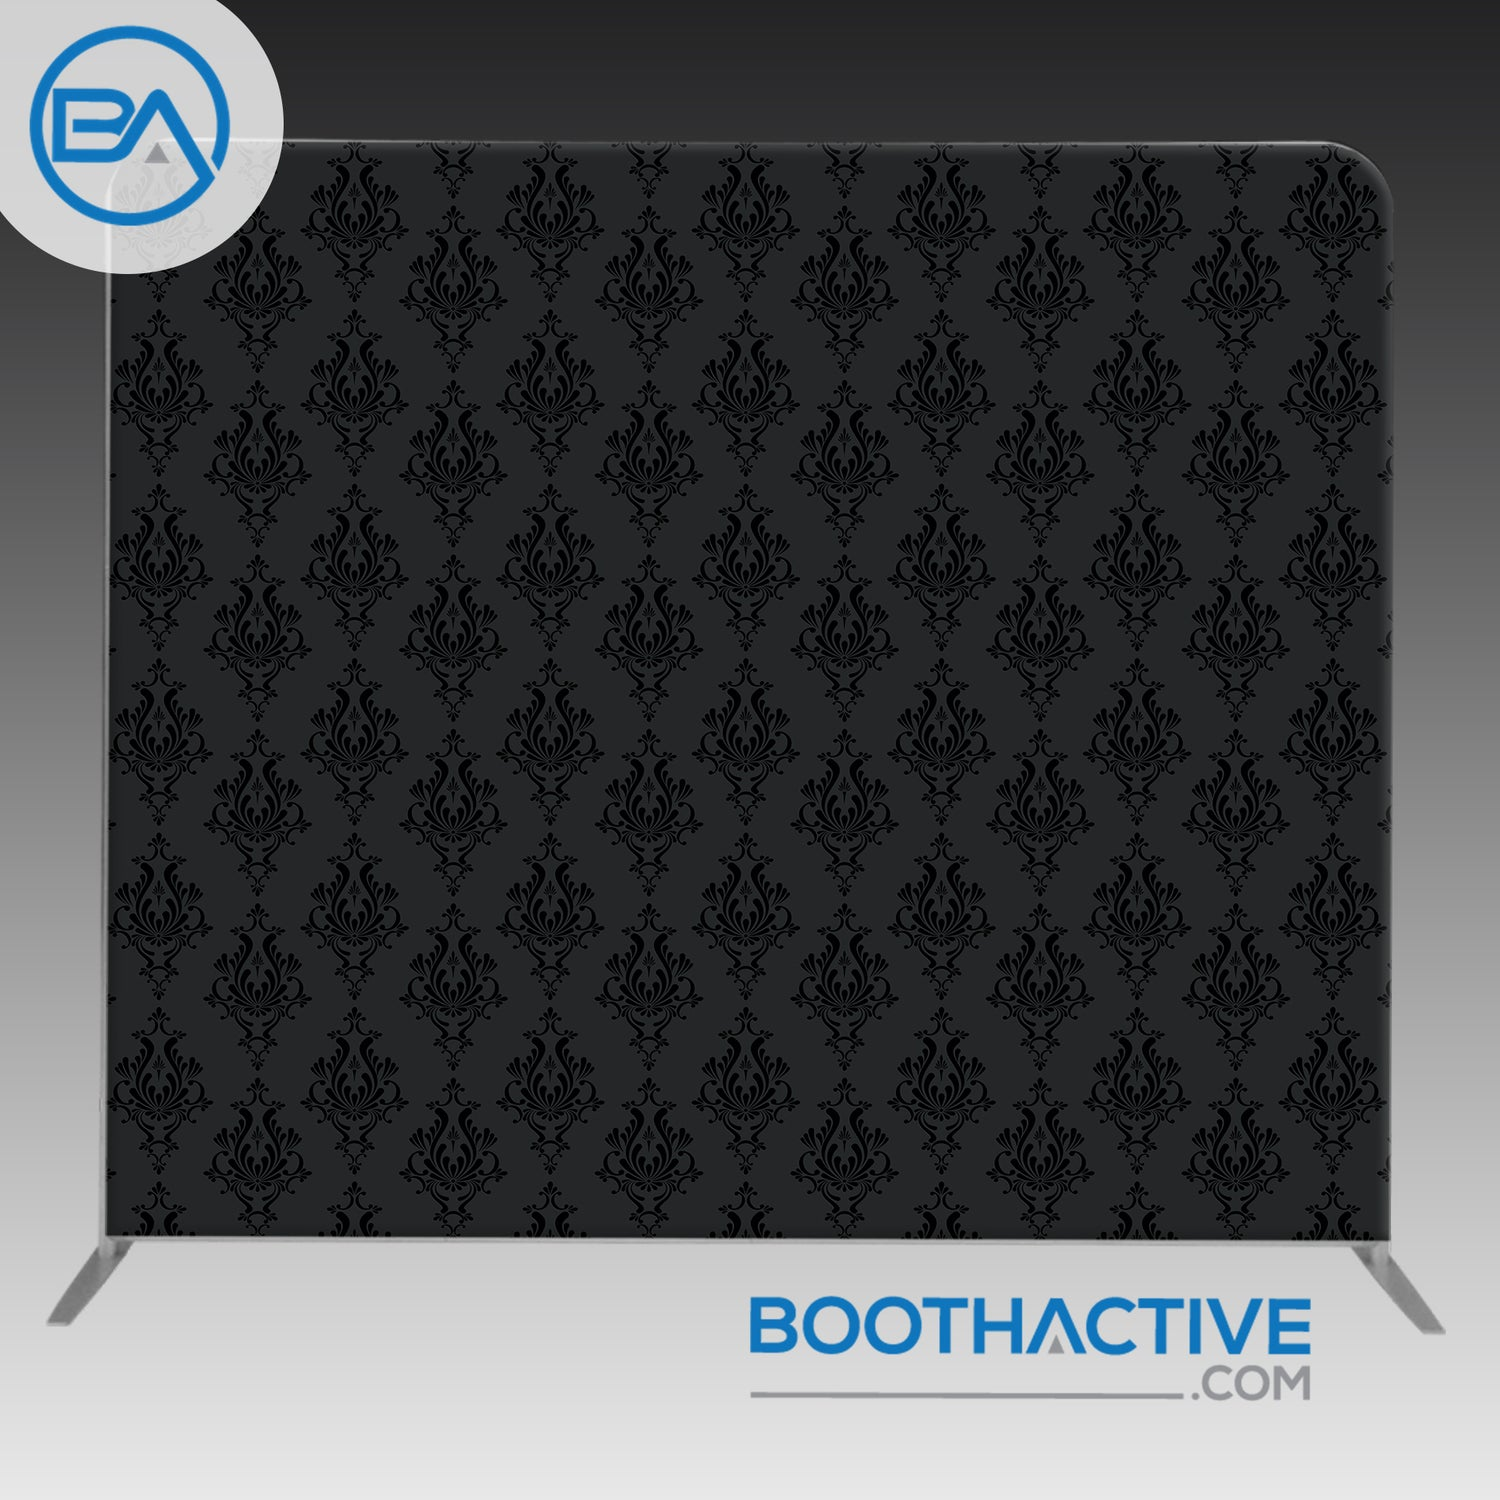 8' x 8' Backdrop - Damask - Dark - BoothActive